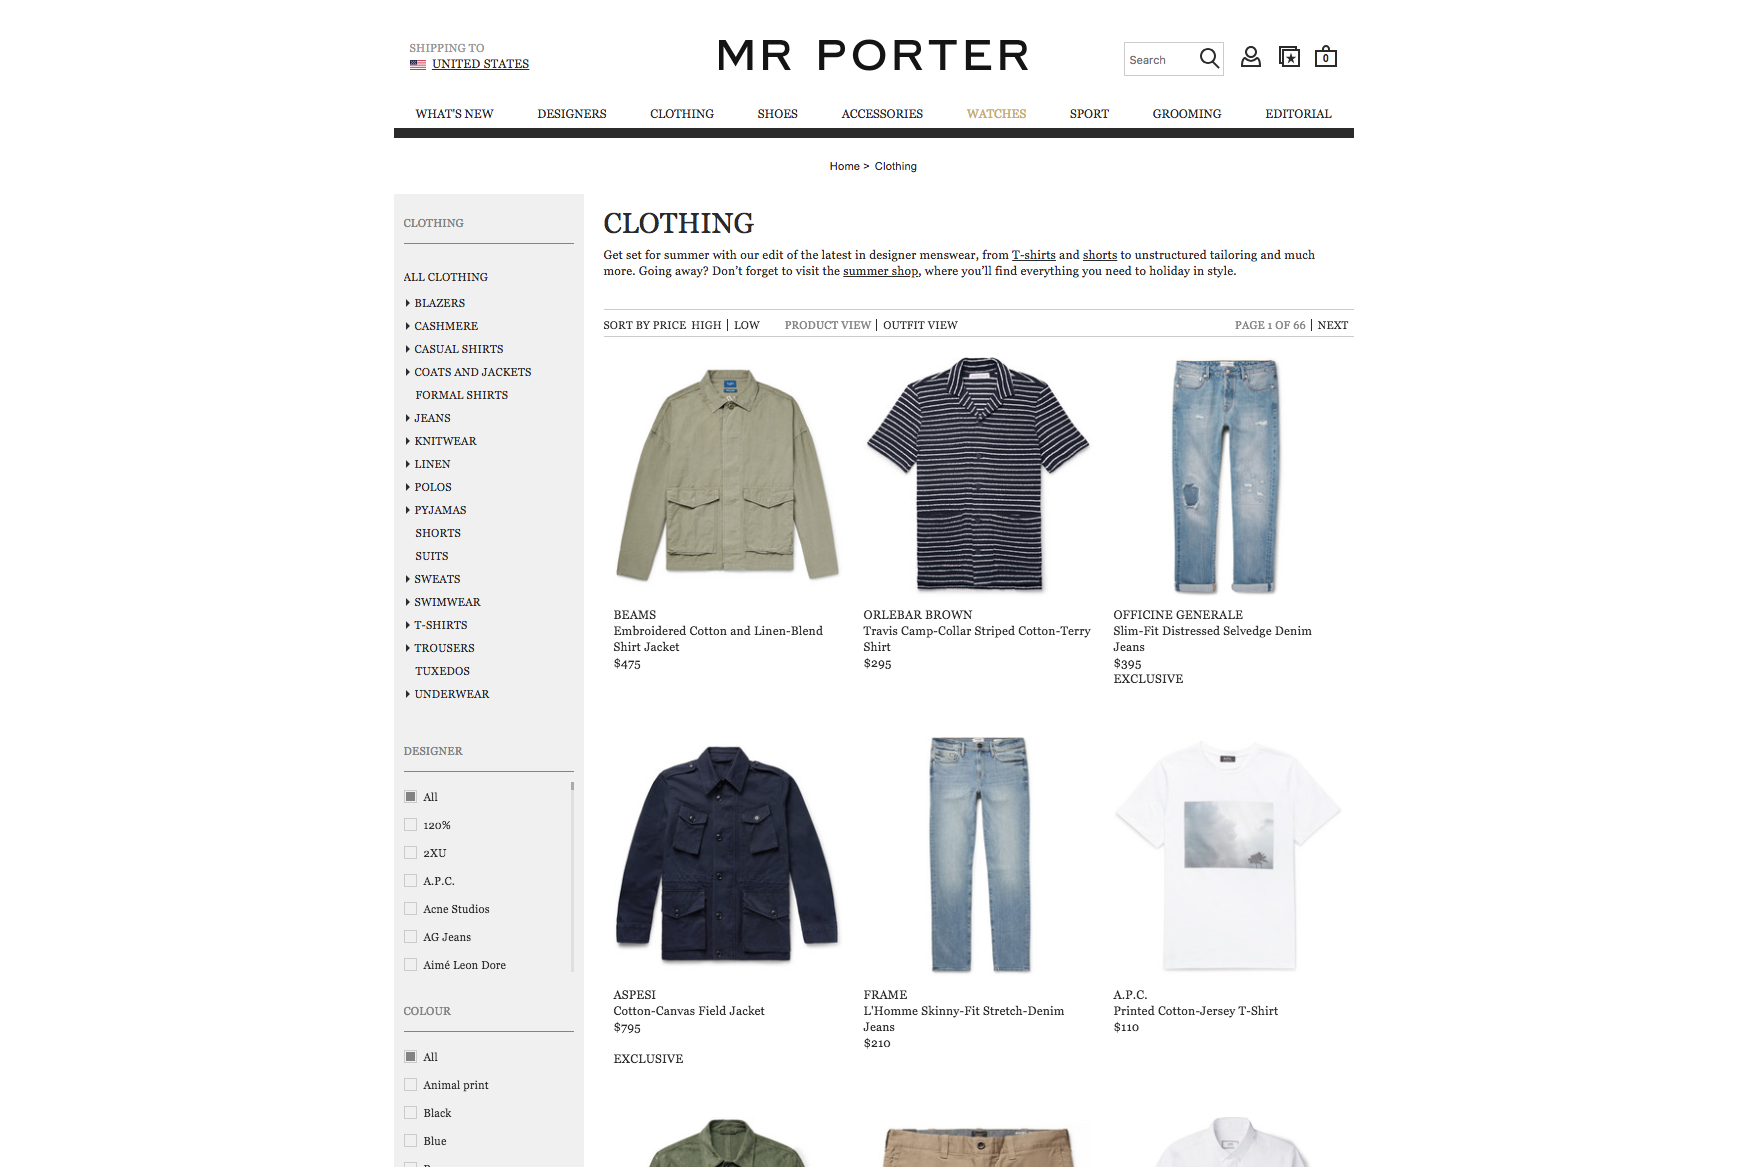 The Mr. Porter website.